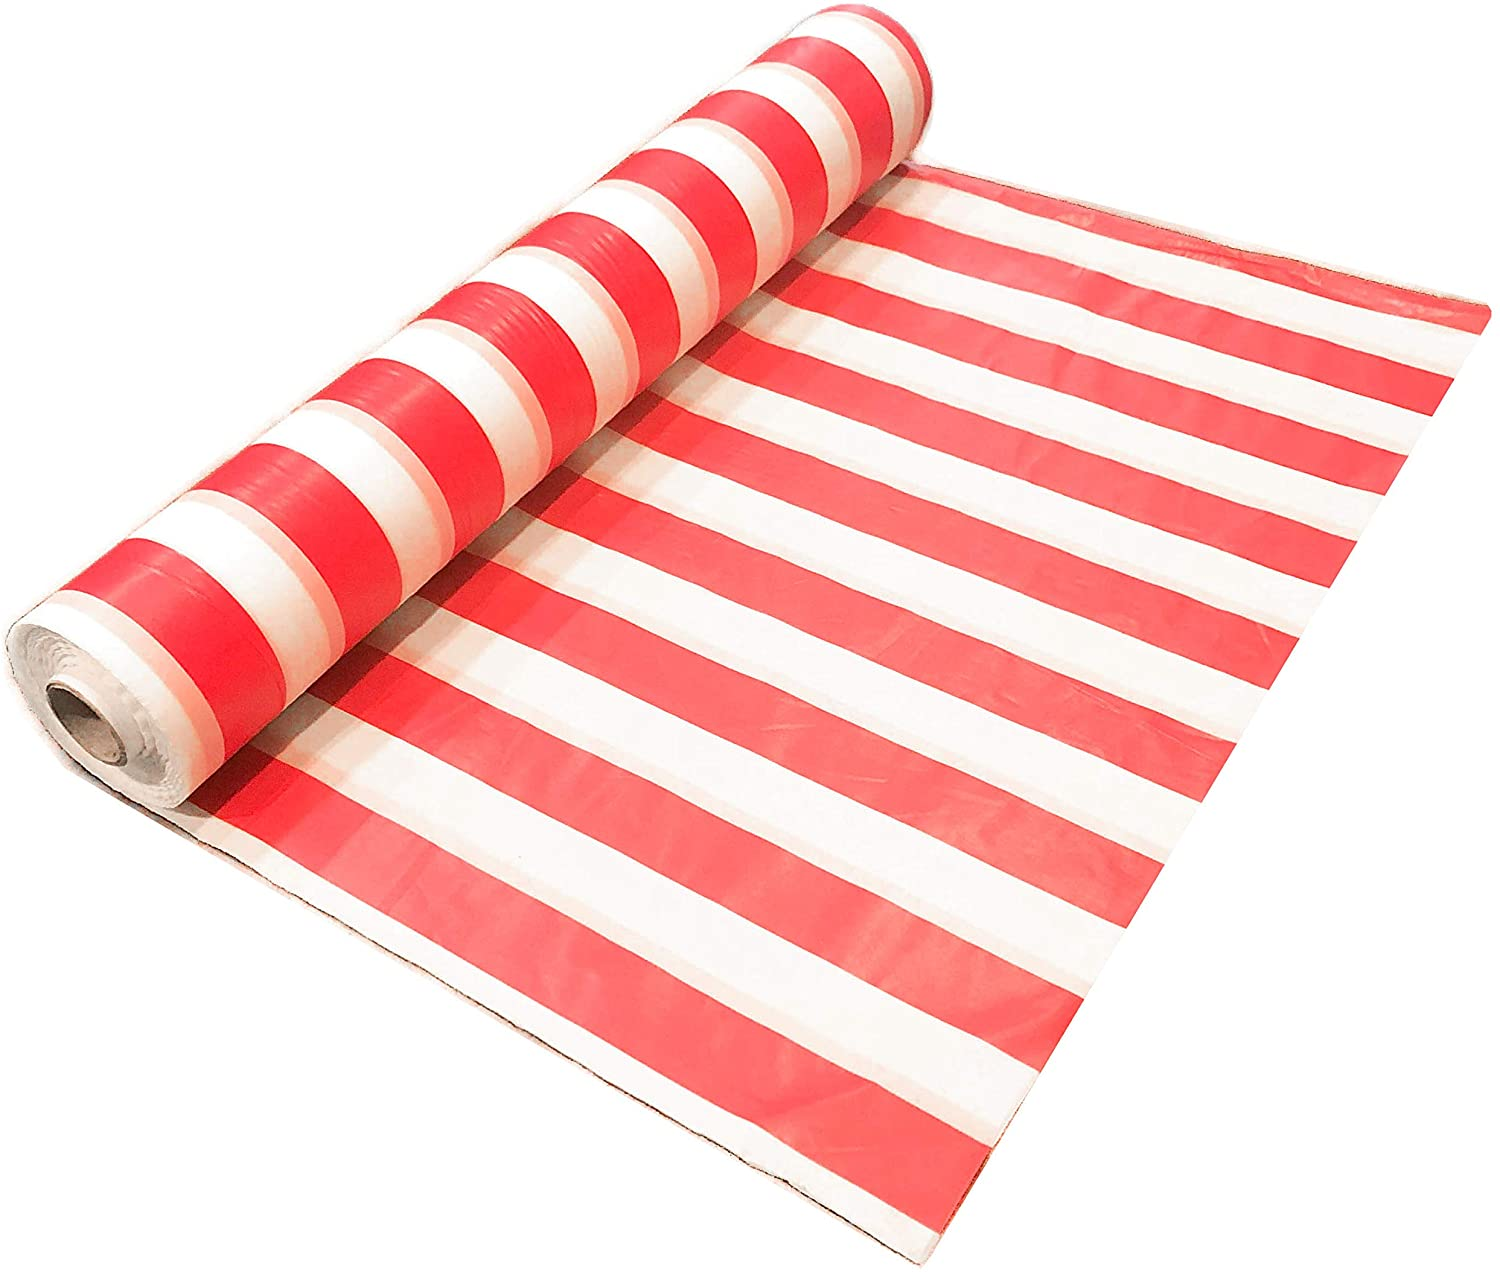 Red and White Striped Plastic Table Cover Roll for Circus Themed Party and Carnival Party Decoration - 10